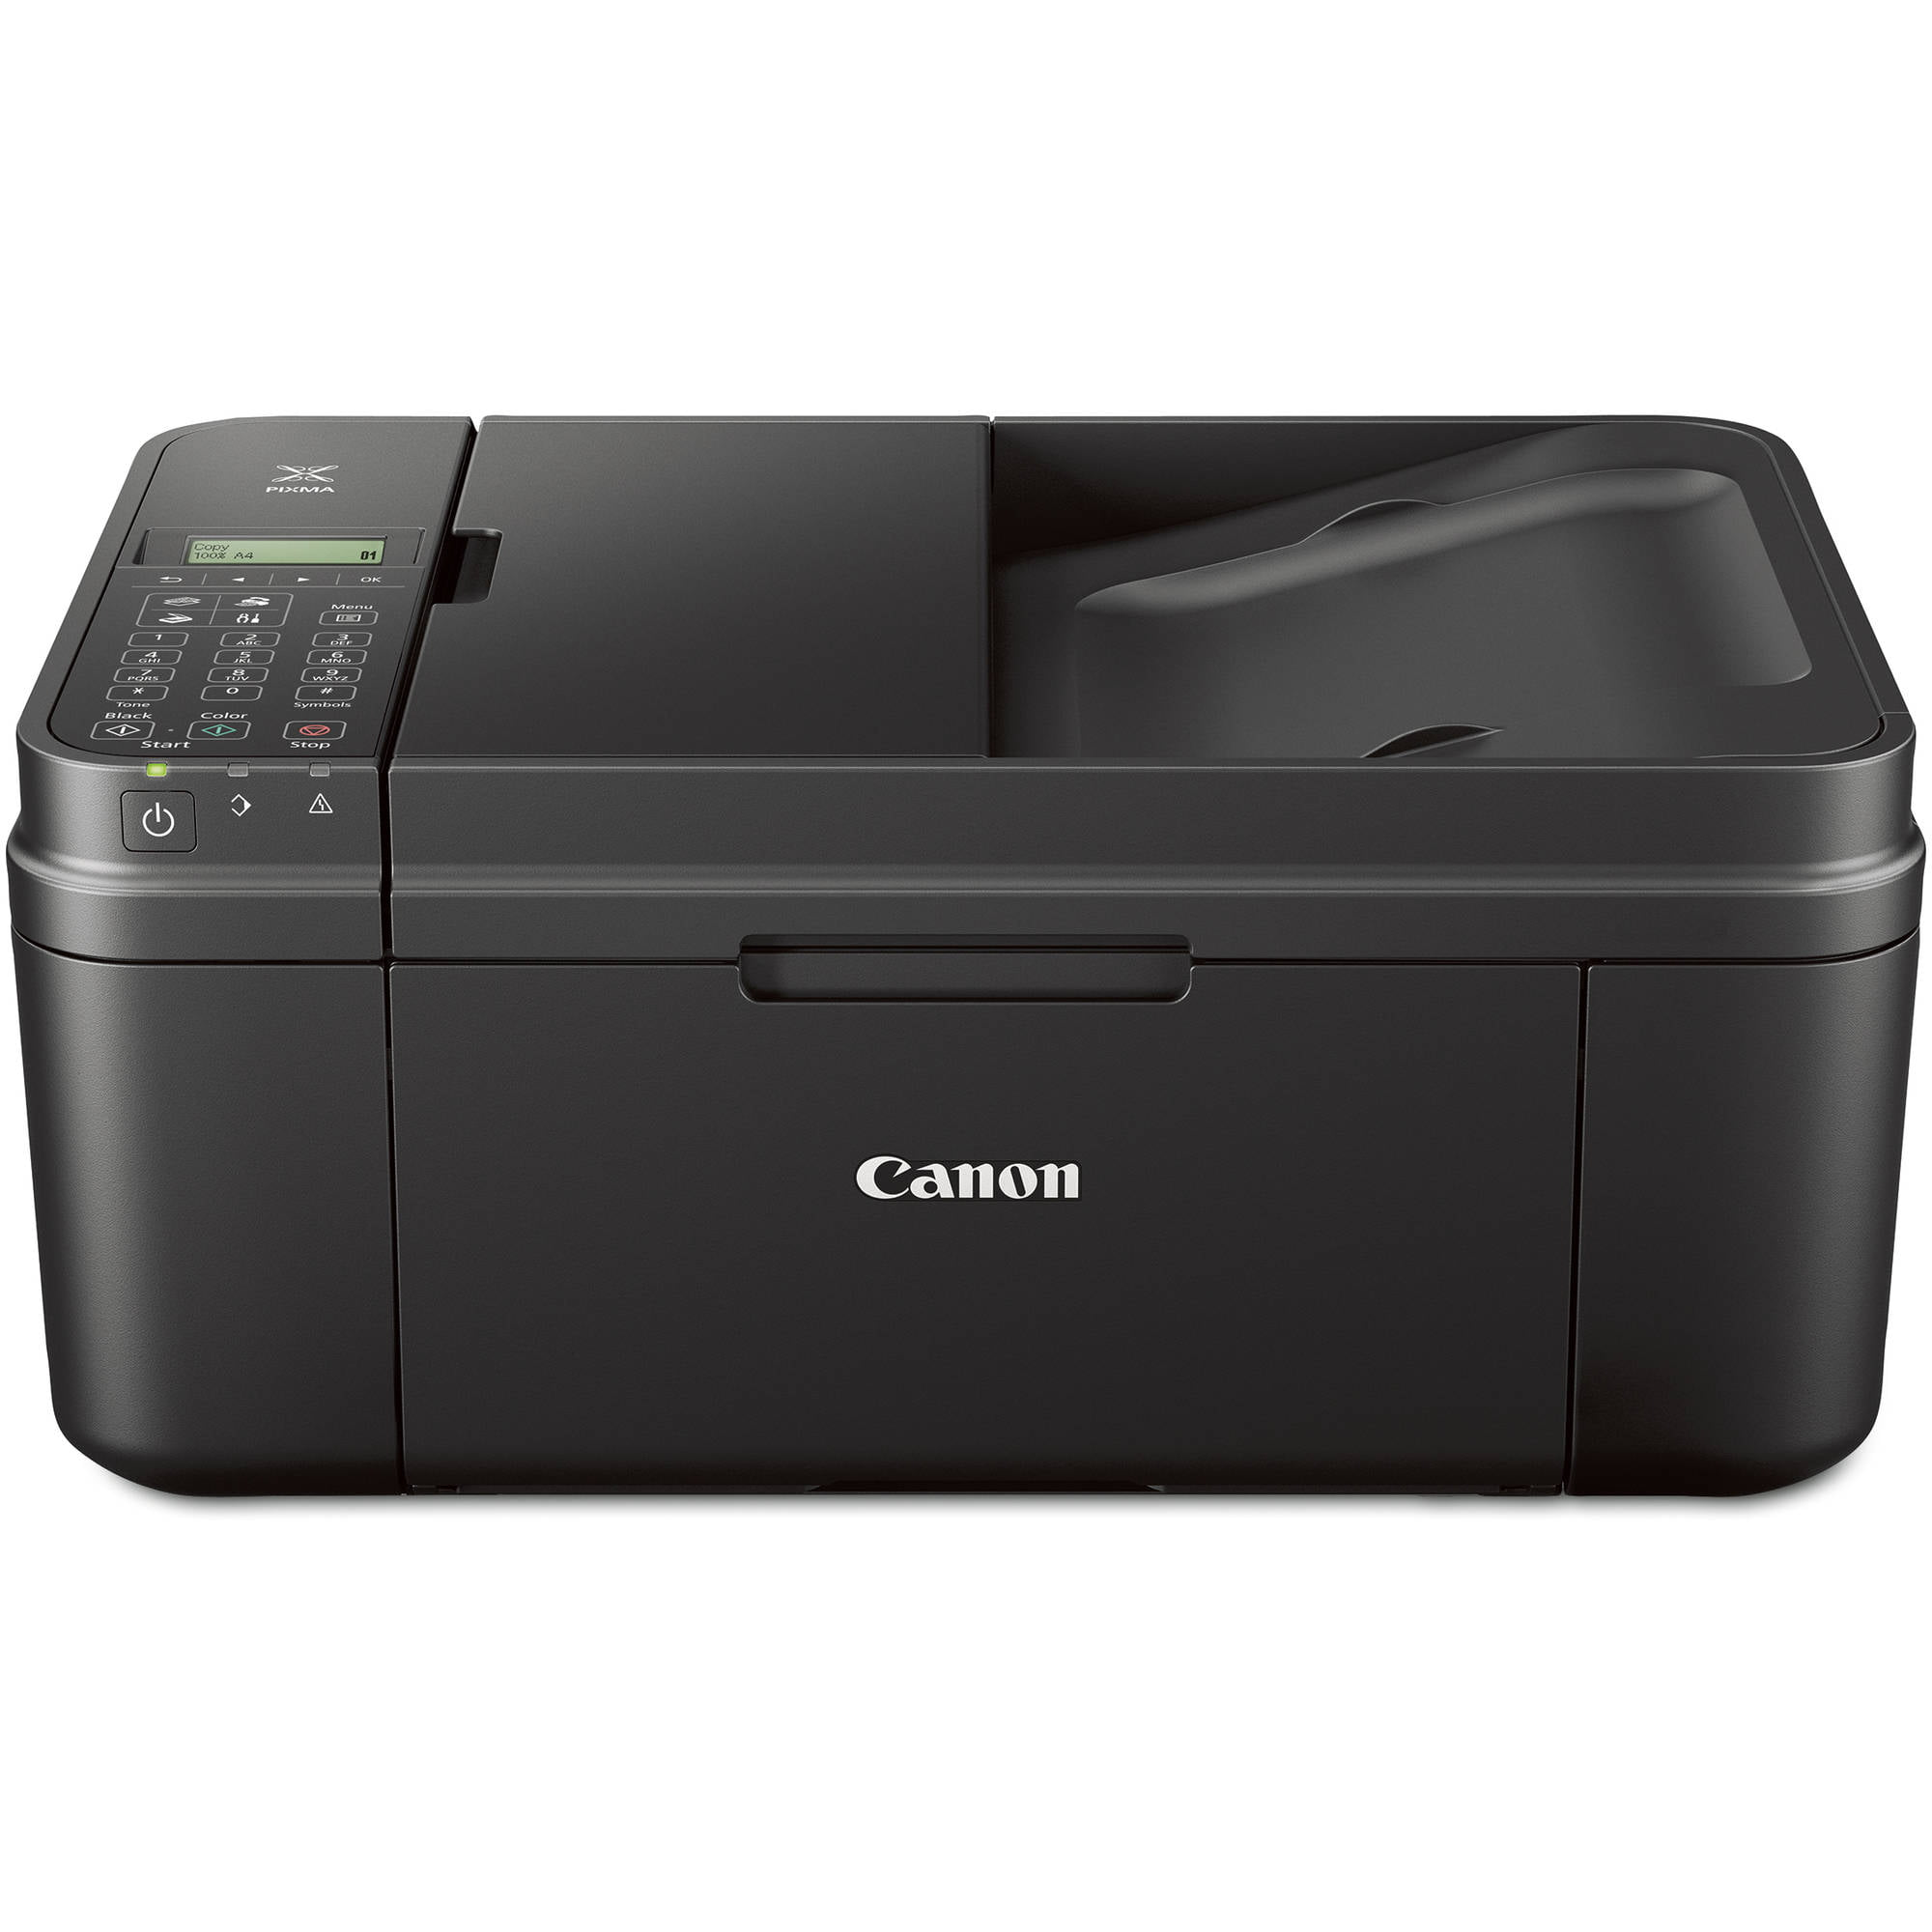 canon pixma mx490 wireless office all in one printer copier scanner fax. Black Bedroom Furniture Sets. Home Design Ideas